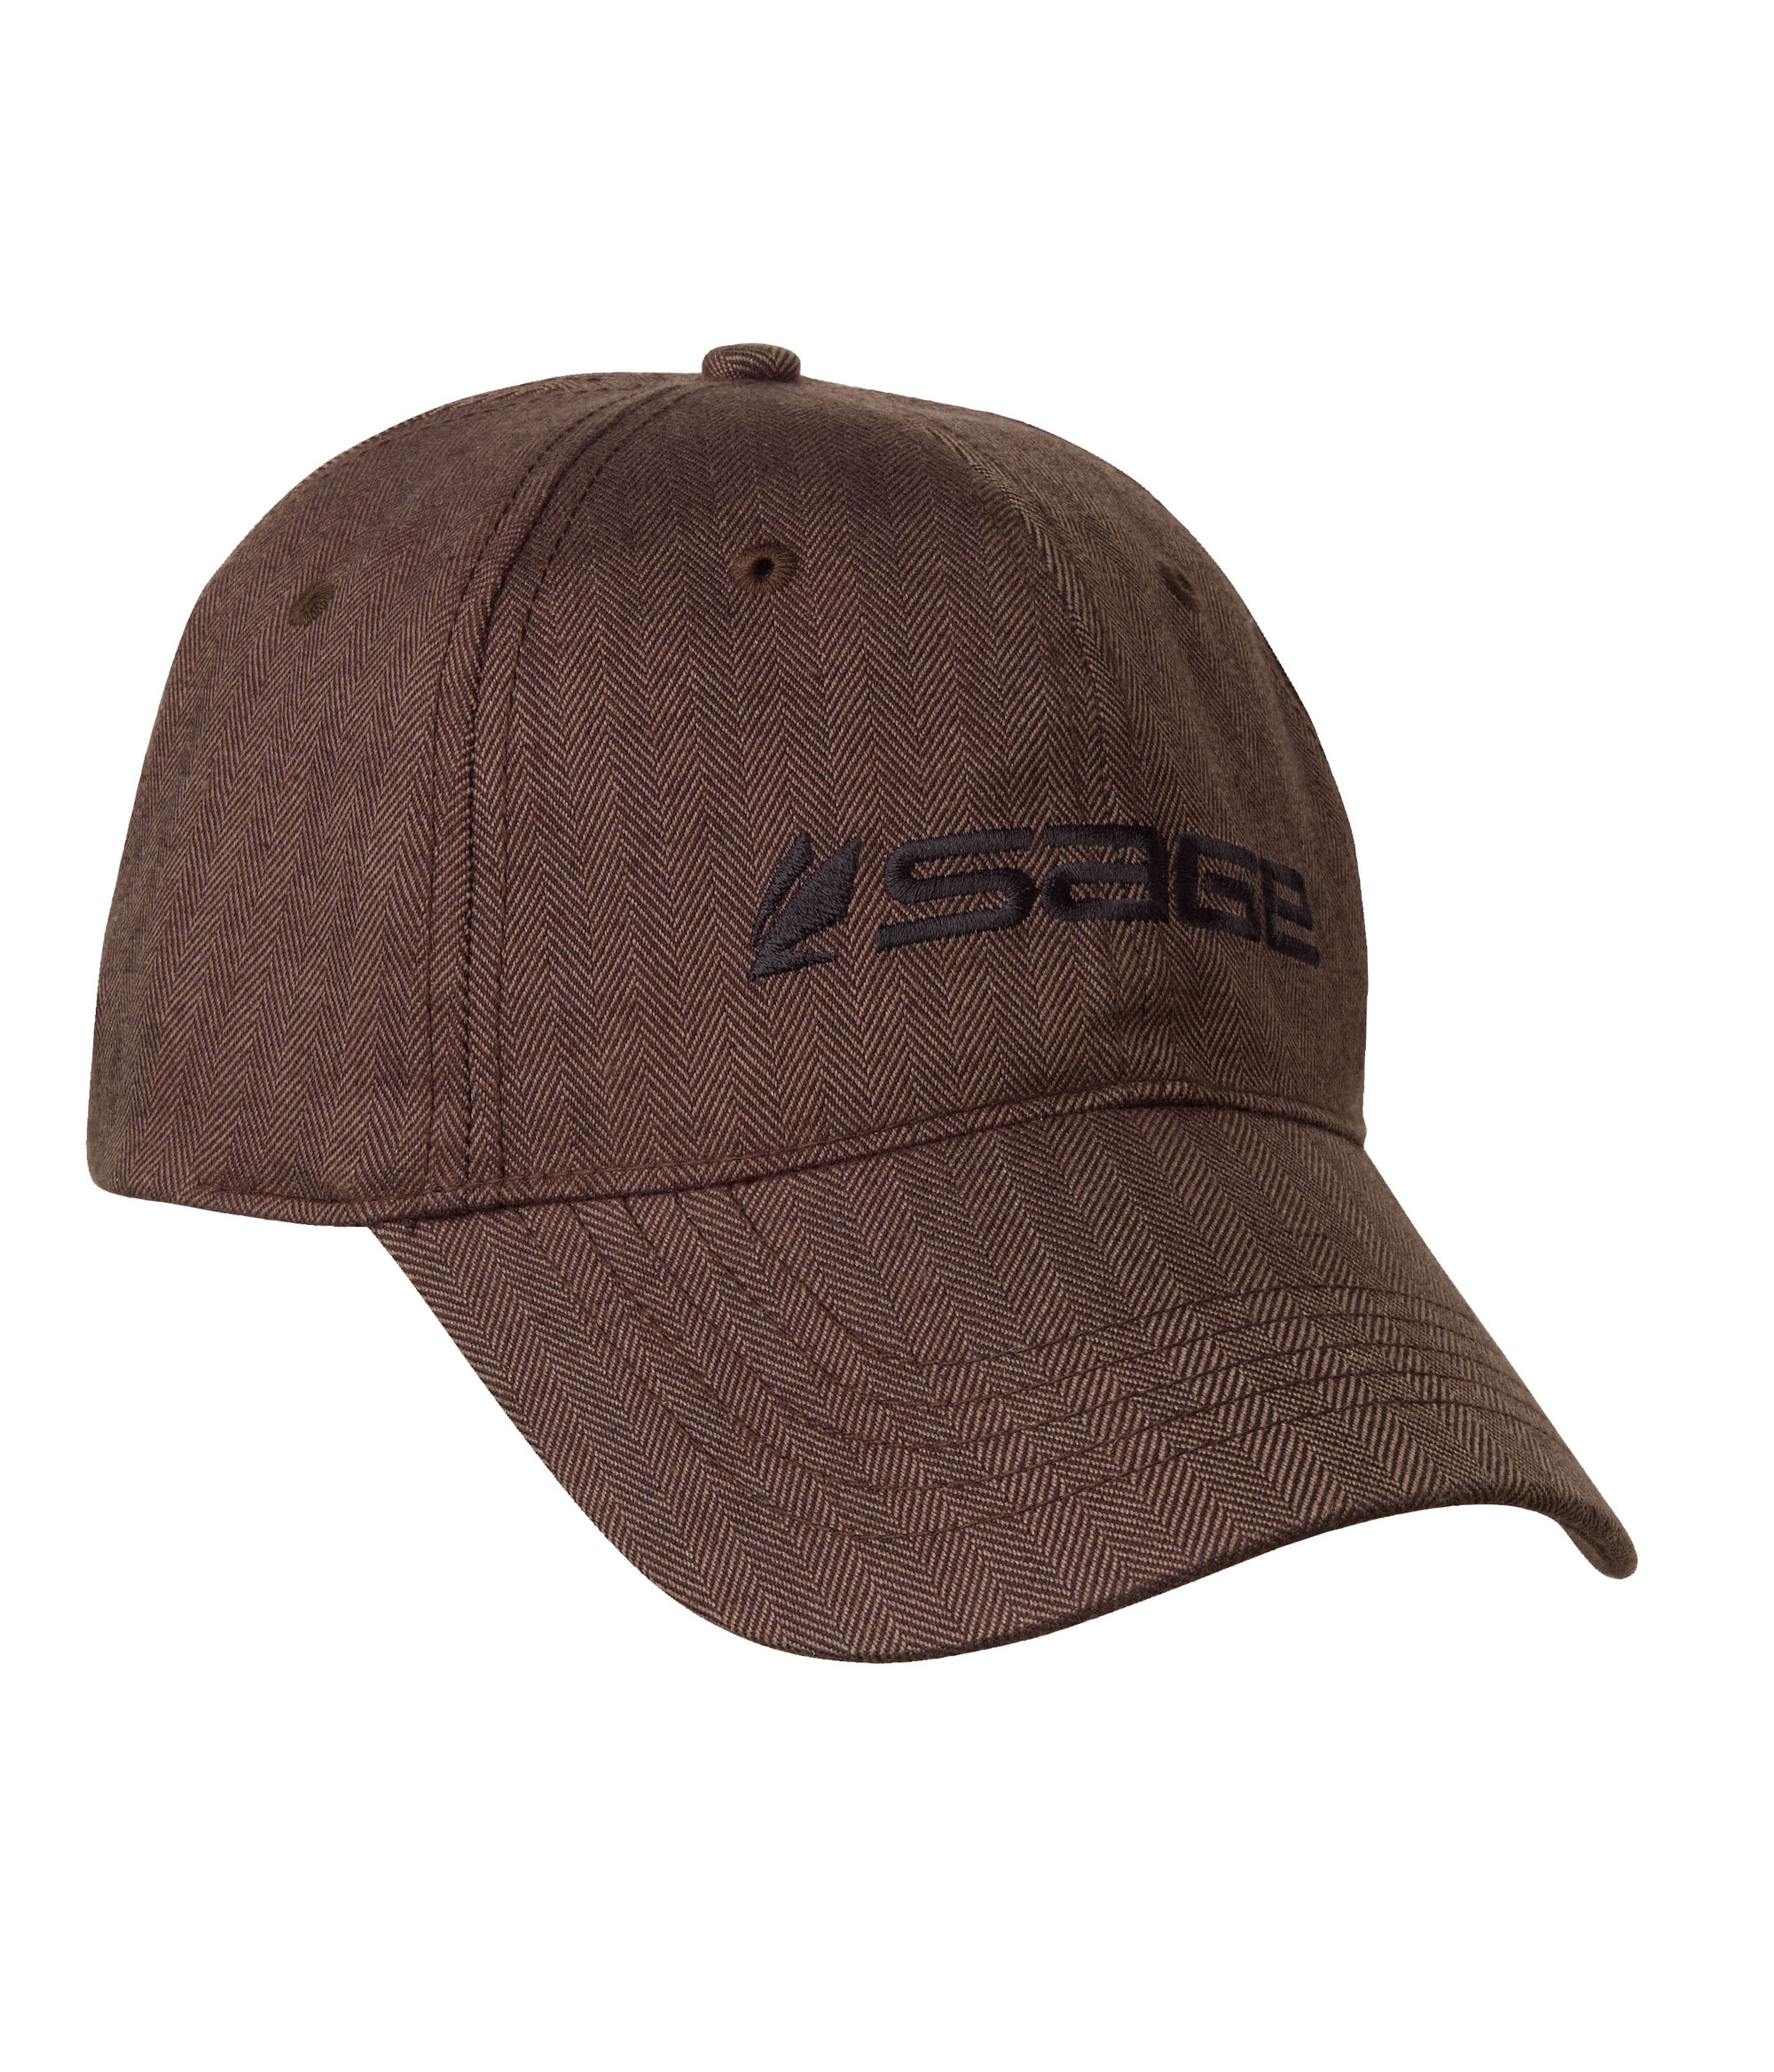 Product description for Sage fly fishing hat